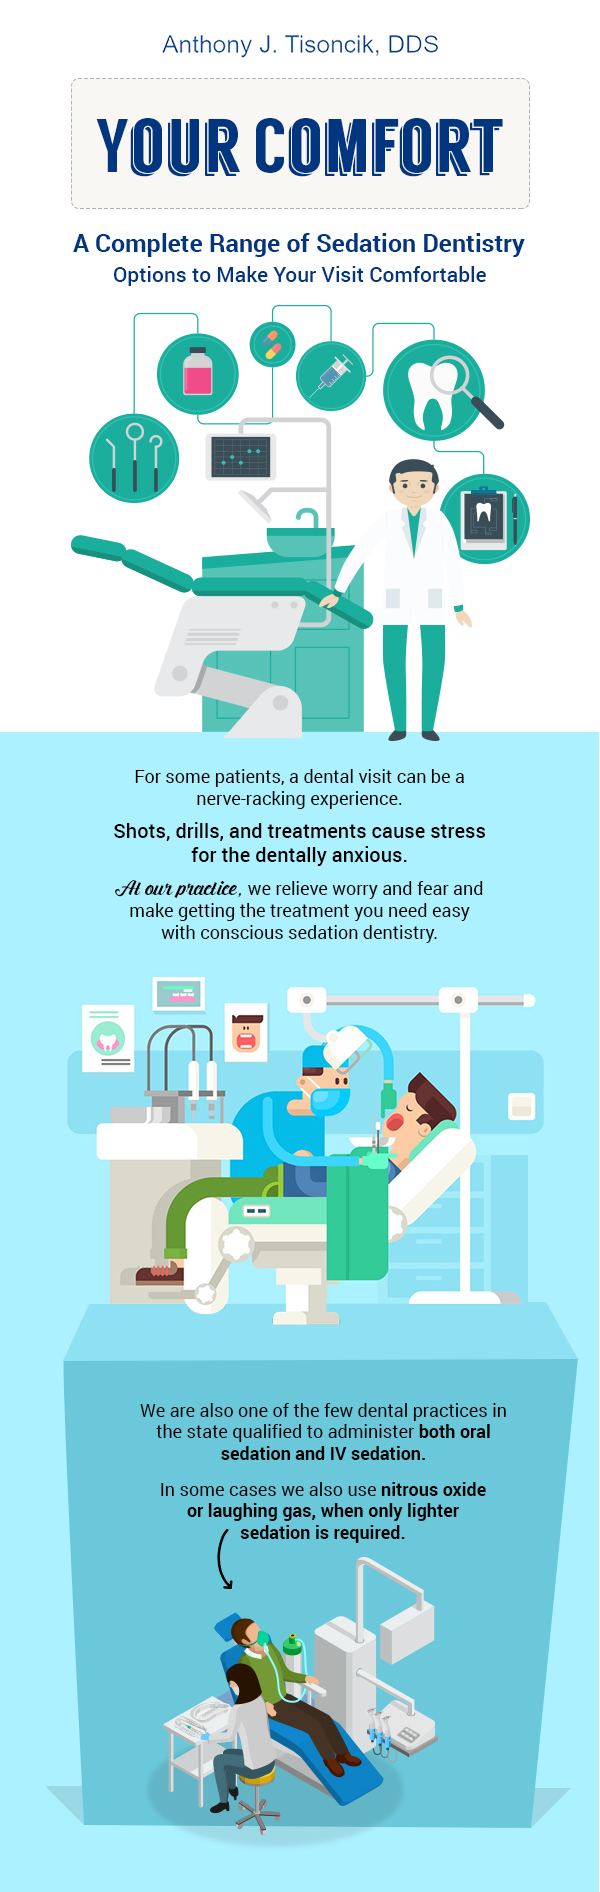 Contact Palos Hills Dental for Conscious Sedation Dentistry in Palos Hills, IL